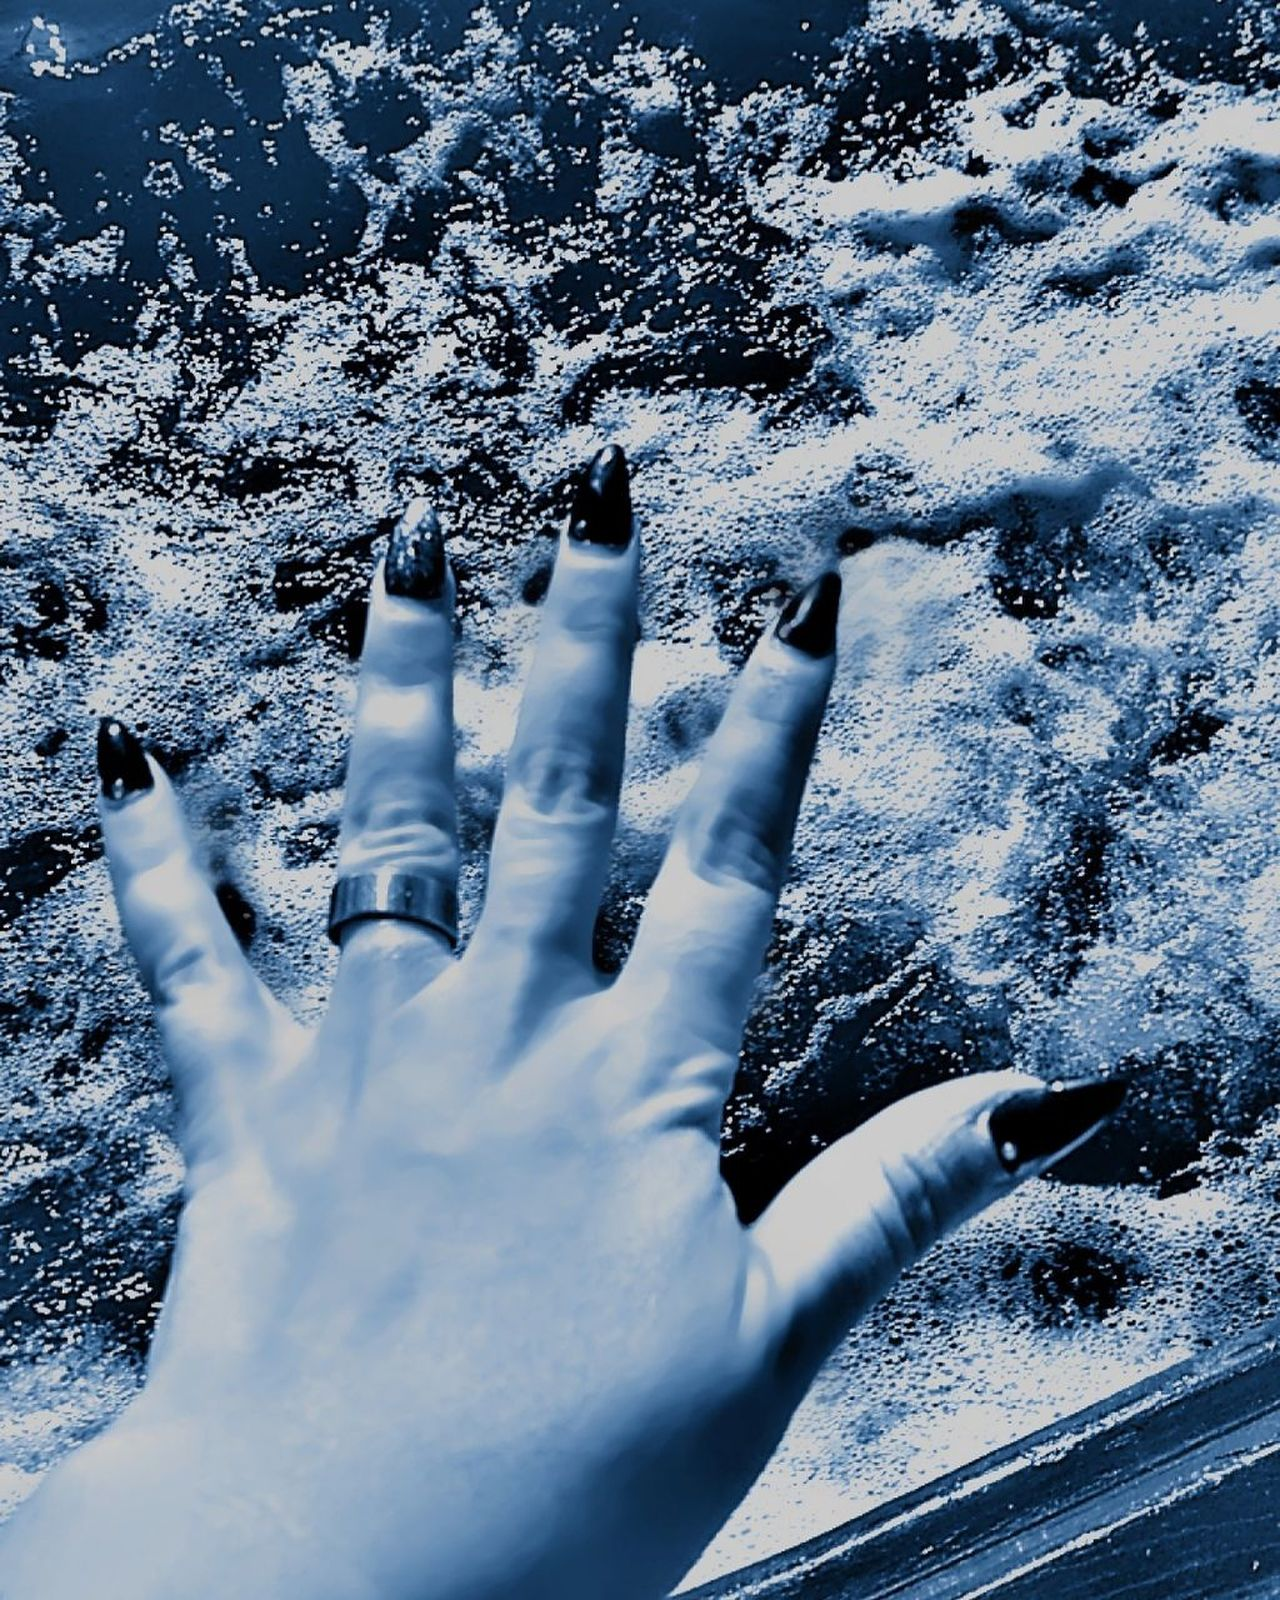 Human Hand Human Body Part Cold Temperature Close-up People Winter Togetherness Day Outdoors Adults Only Nature Adult Myhand Water Nature Myrivercottage Washing Sailing Ship Tranquil Scene River Collection Beauty In Nature Oporto Downtown Nautical Vessel Ropes Boats Boat Deck